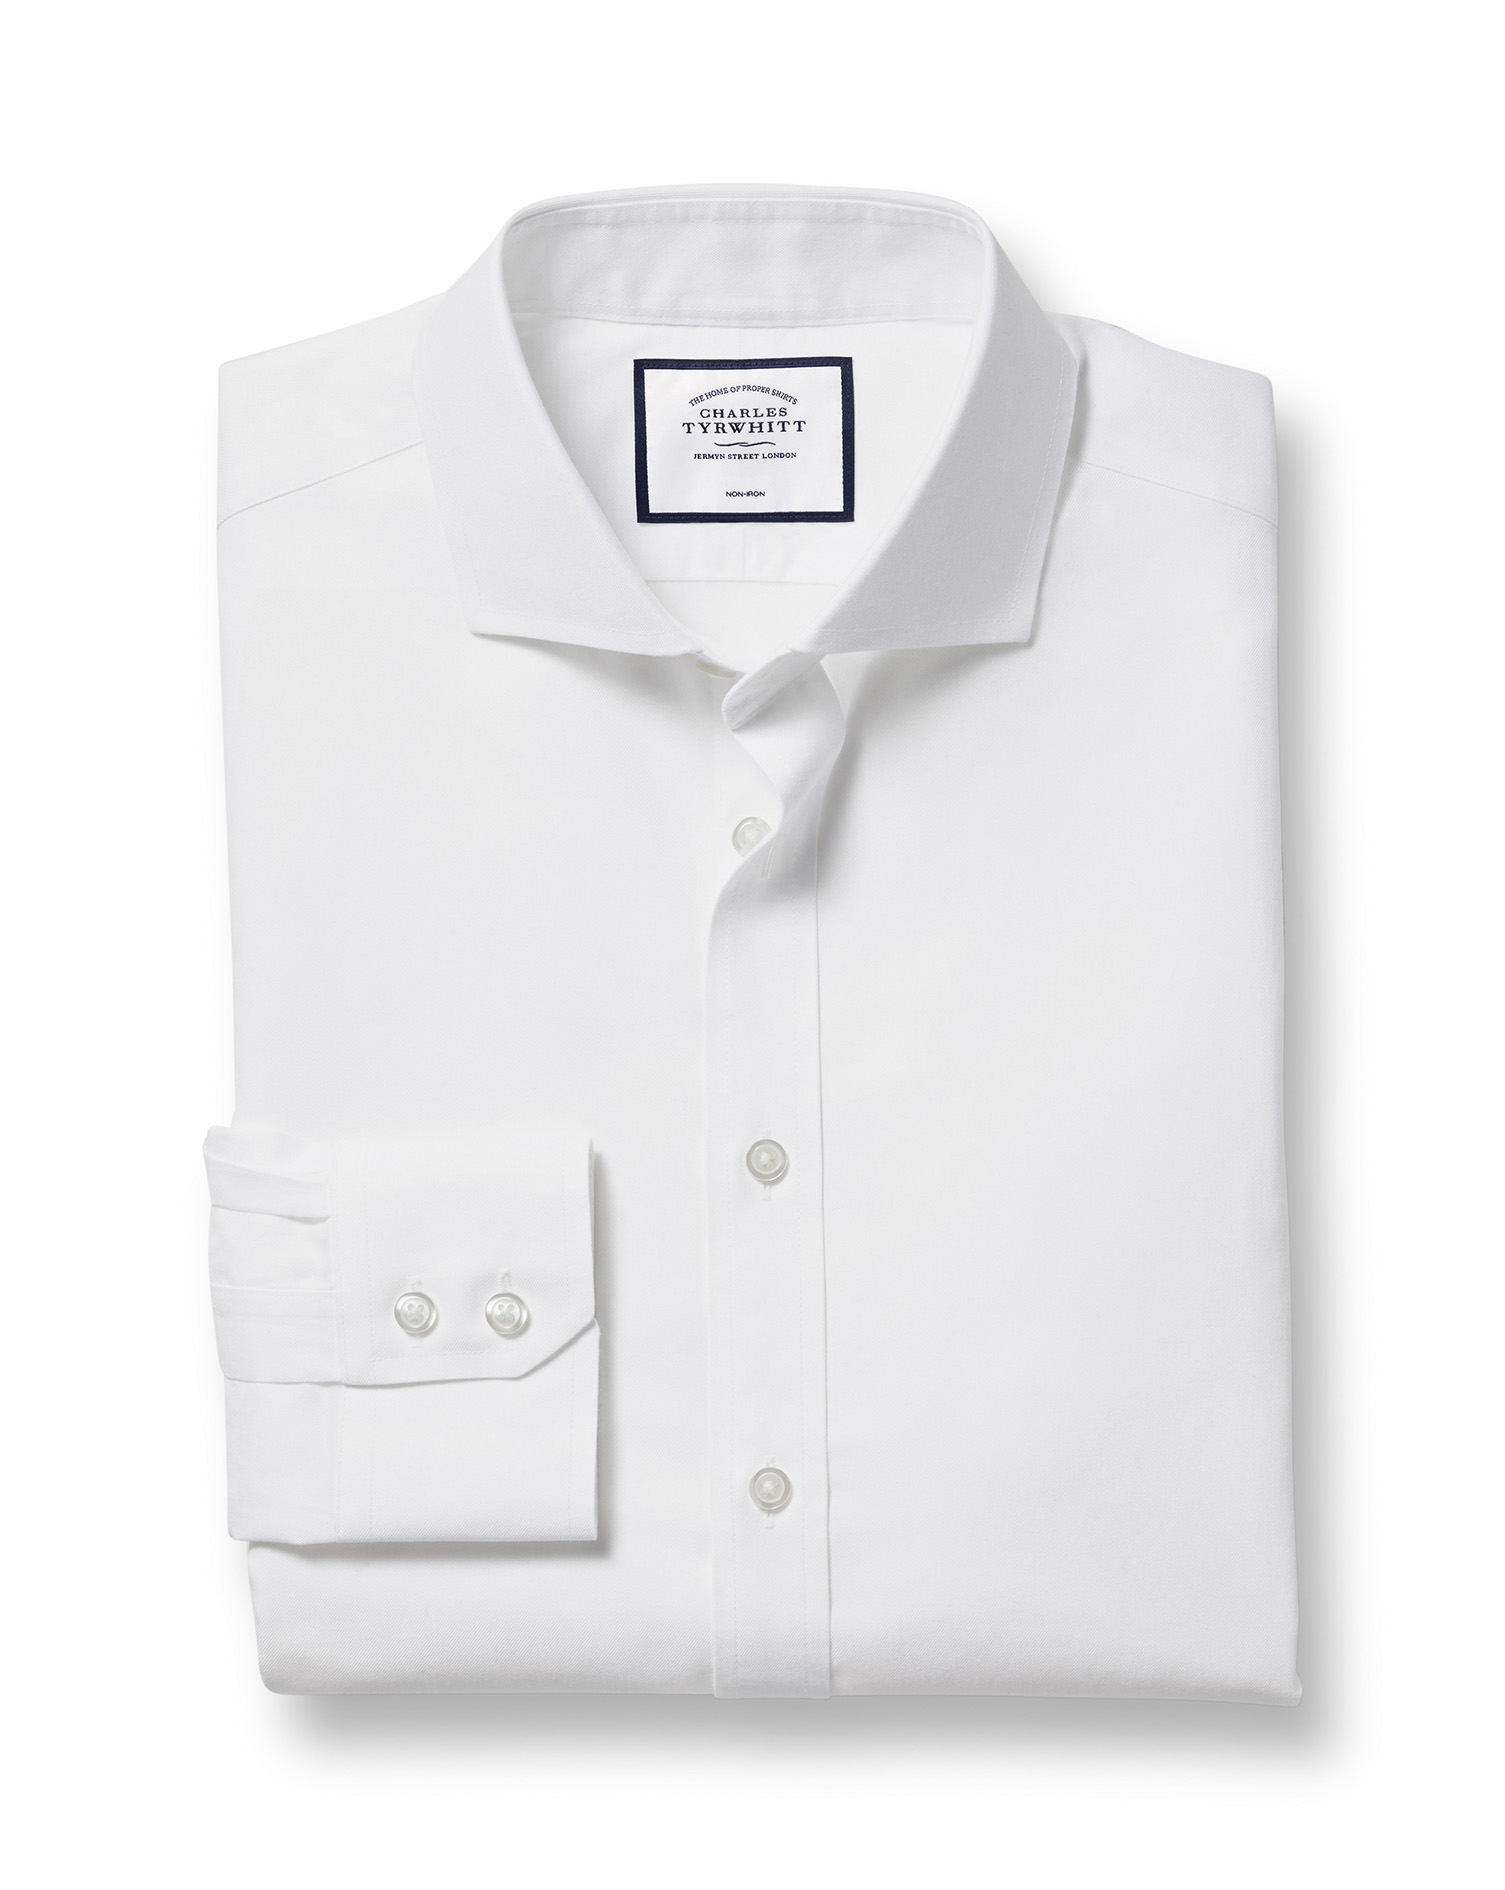 Slim Fit Extreme Cutaway Non-Iron Twill White Cotton Formal Shirt Double Cuff Size 16.5/33 by Charle